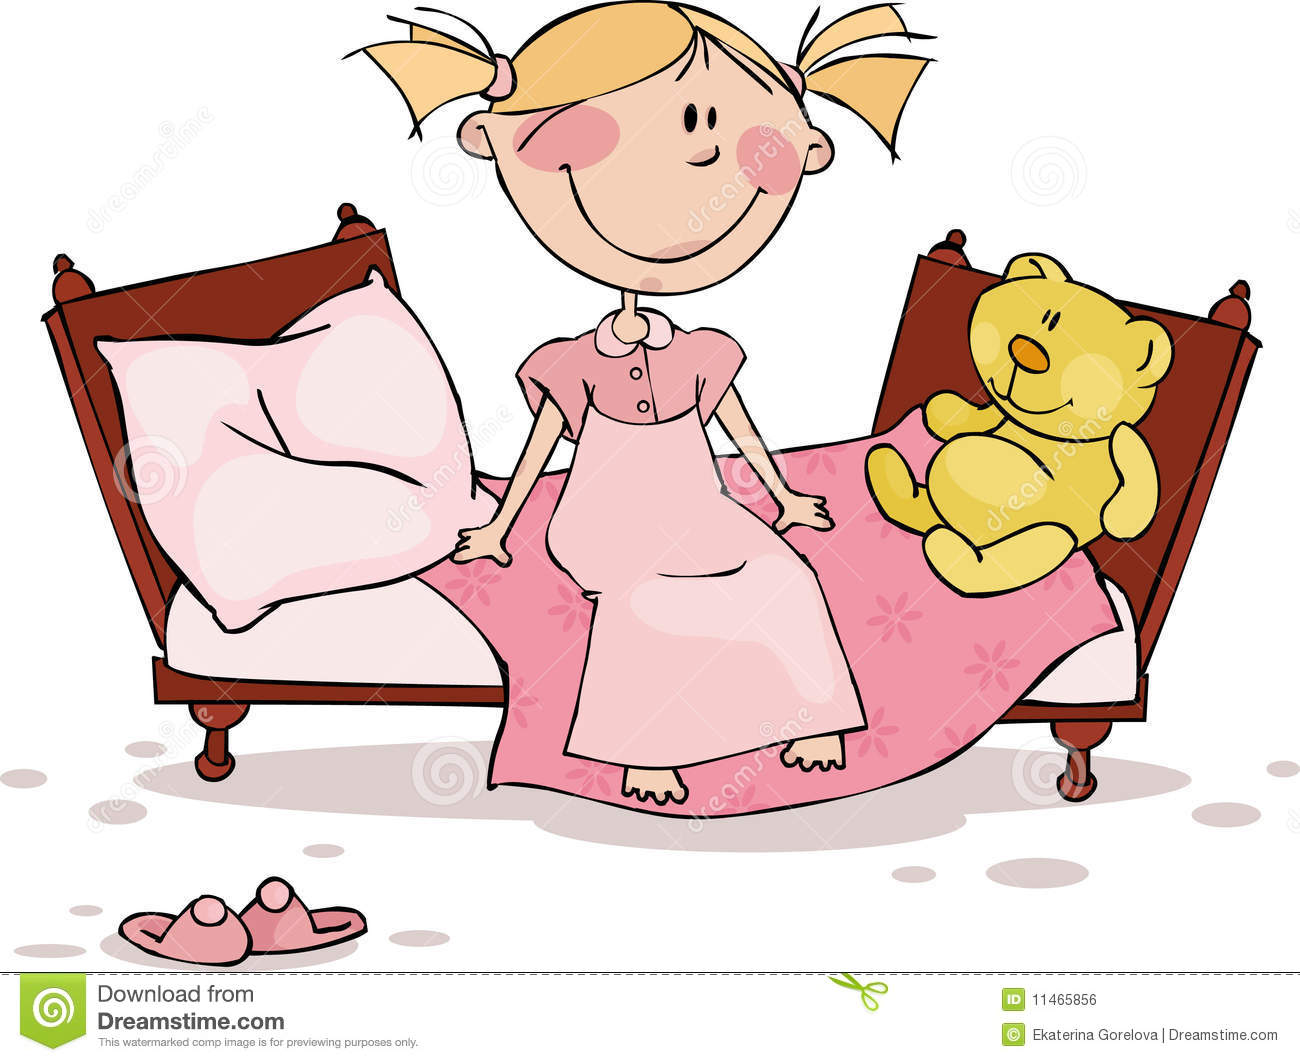 Clipart gute nacht image royalty free library Pajamas Stock Illustrations – 2,354 Pajamas Stock Illustrations ... image royalty free library